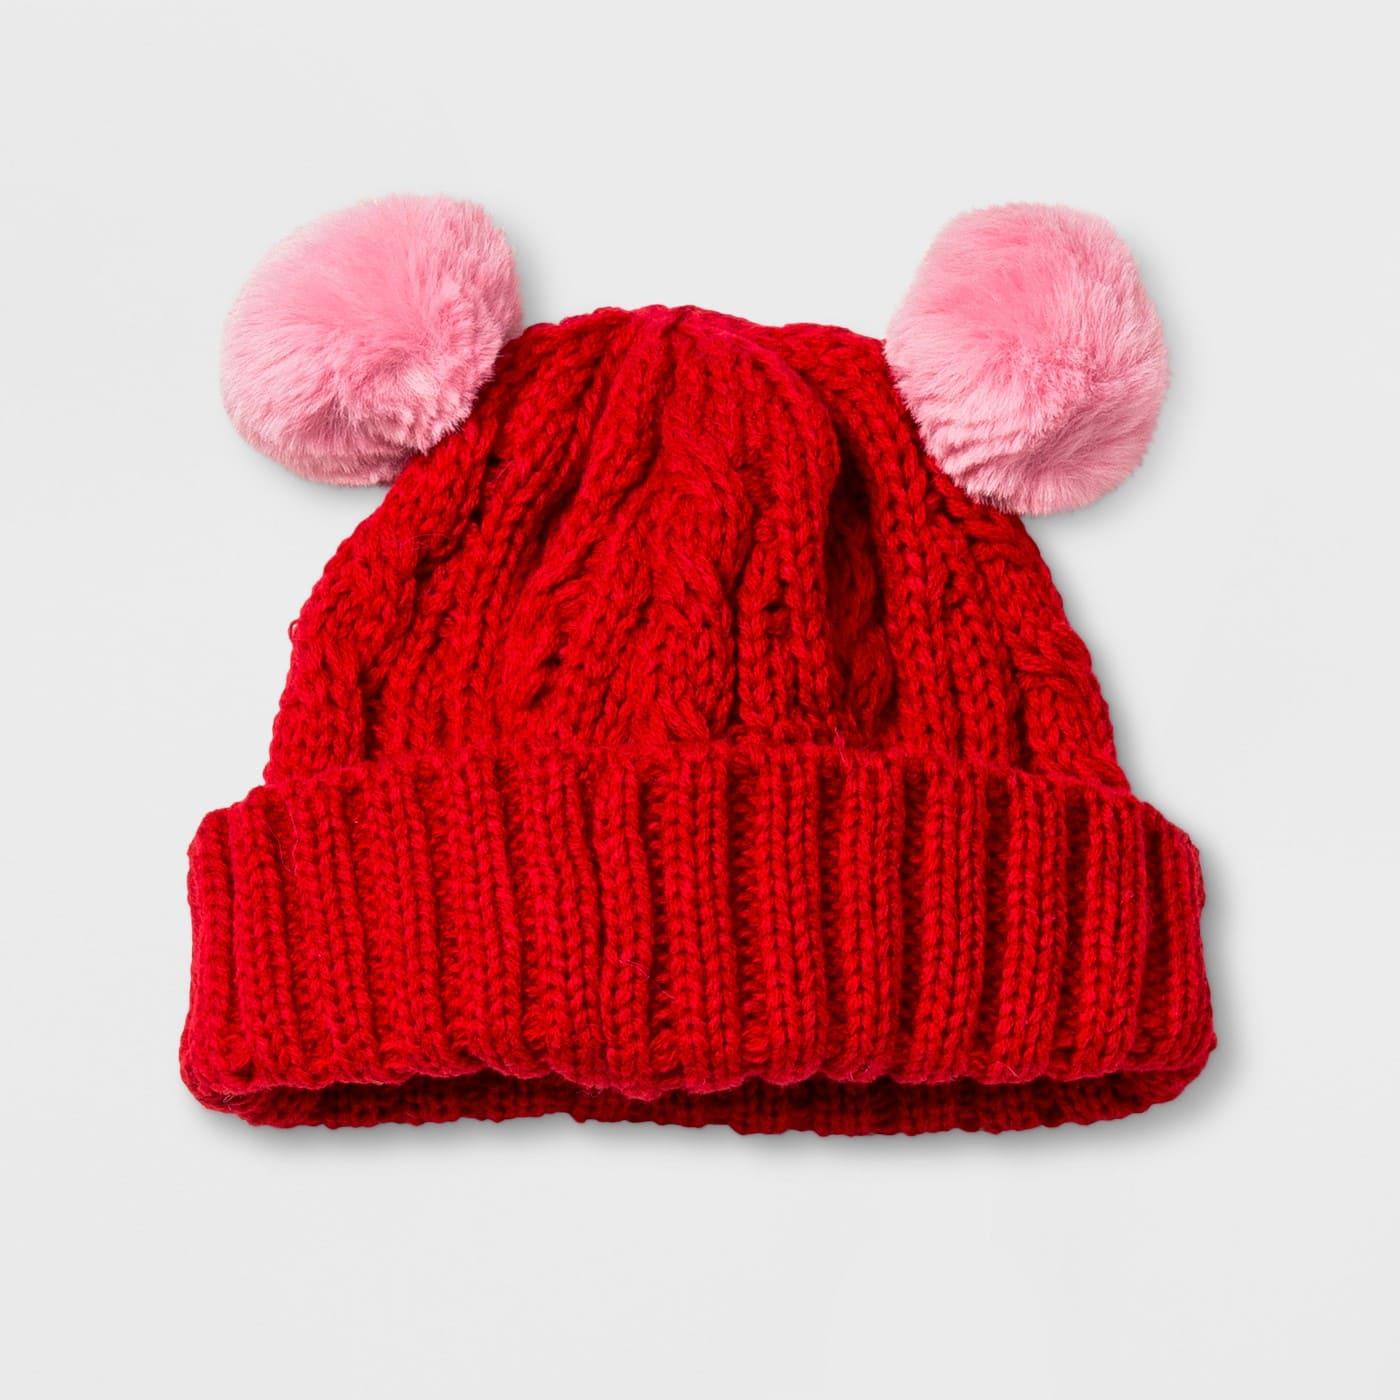 Cat   Jack Baby Cable Beanie with Poms  3.79 w Red Card - Target - Free  Shipping 71578ee18bf